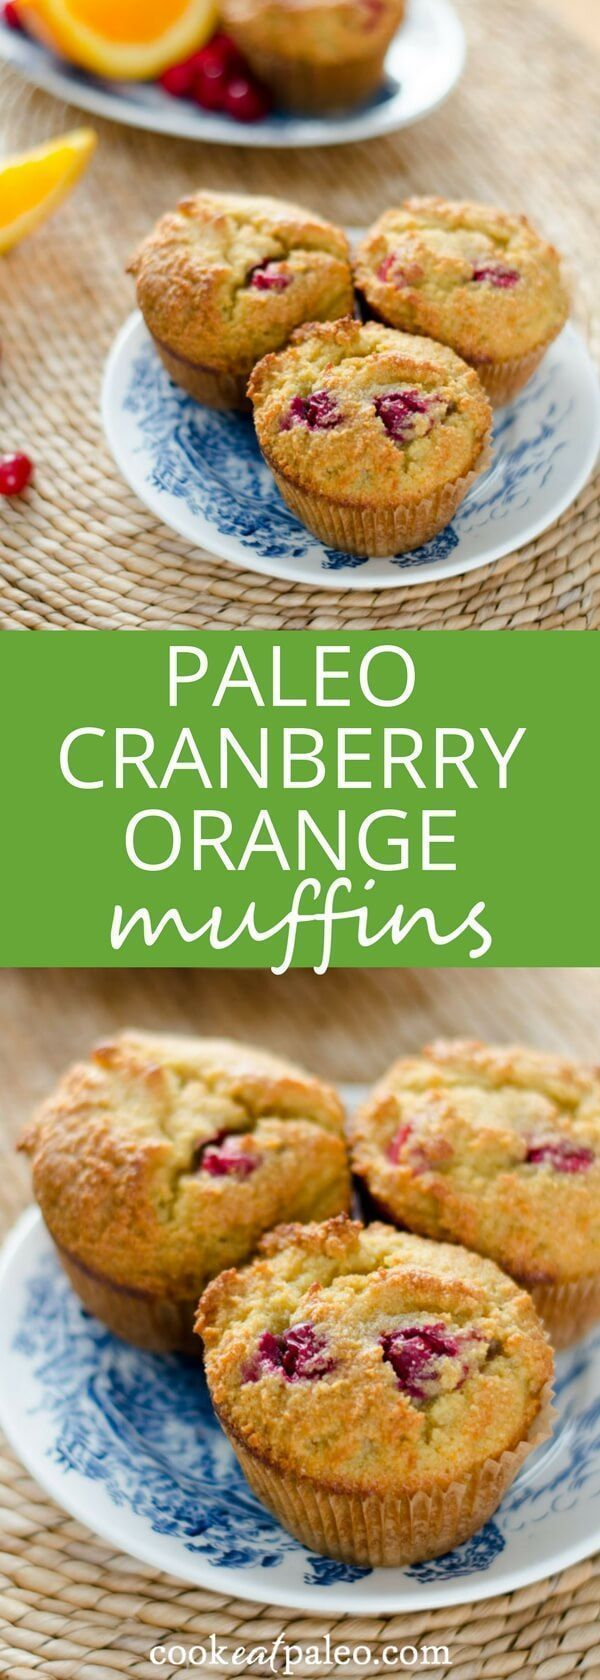 This quick and easy paleo cranberry orange muffins recipe is gluten-free and grain-free. A wonderfultreat you can enjoy any time of the year via CookEatPaleo. #muffinrecipe #paleomuffin